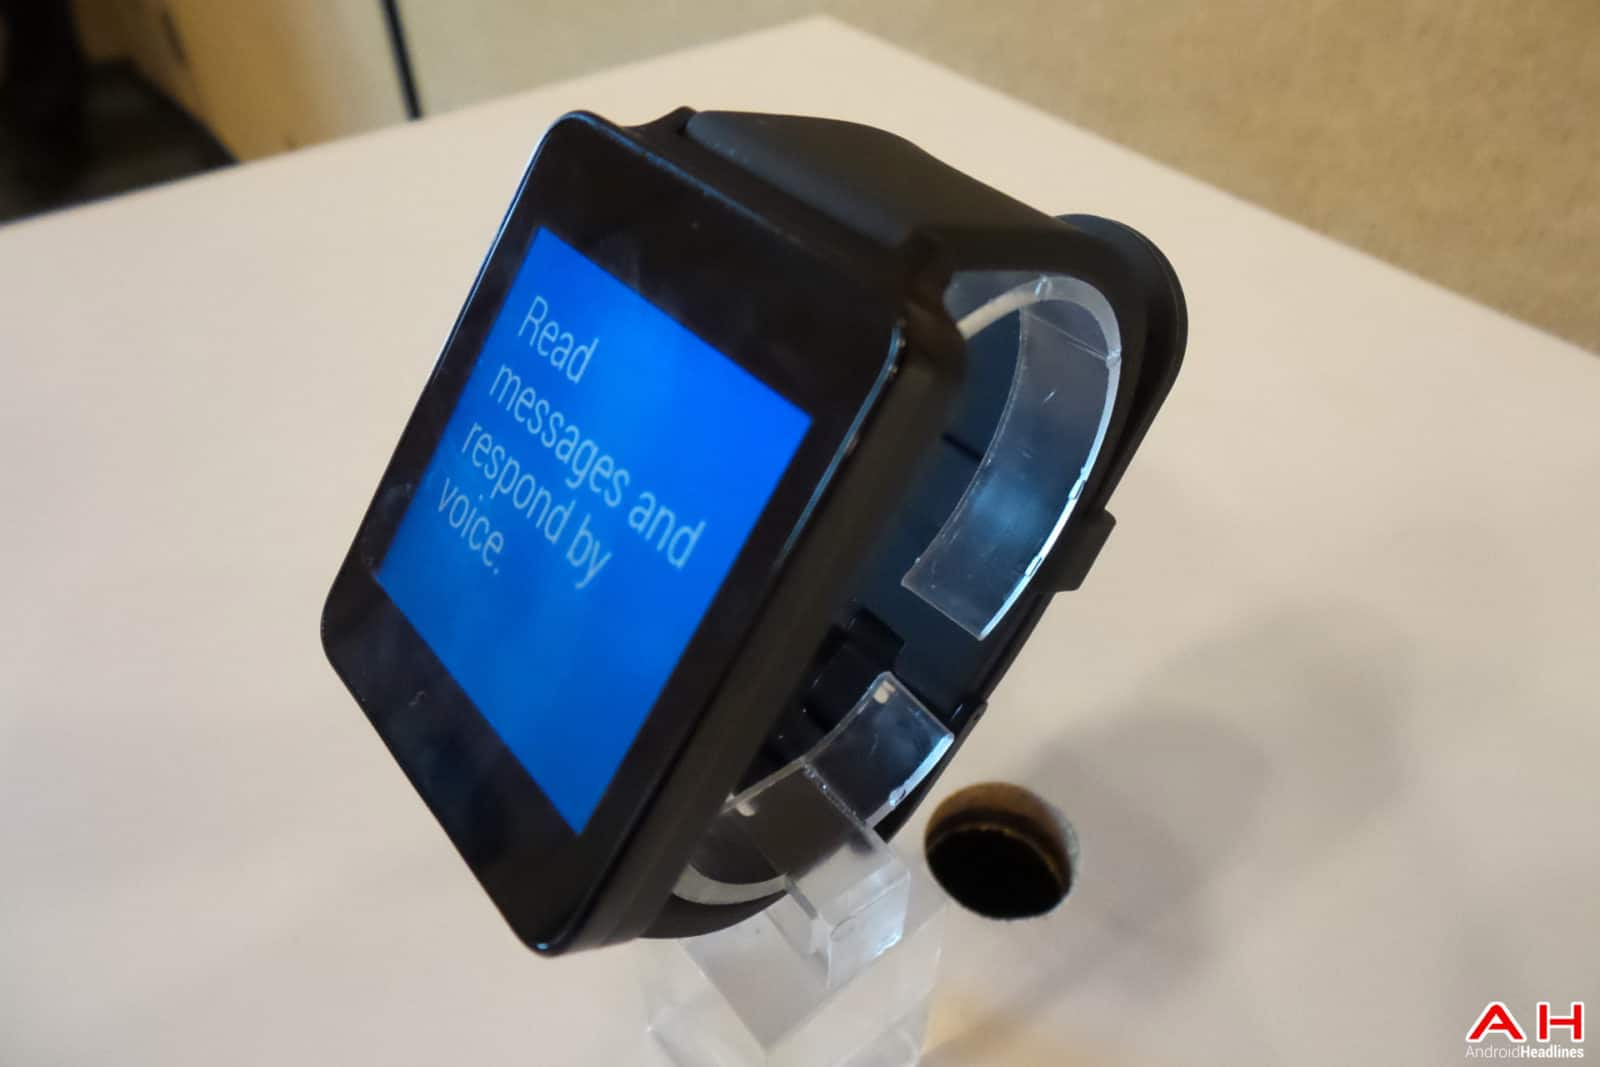 AH Google IO 2014 LG G Watch (8 of 10)